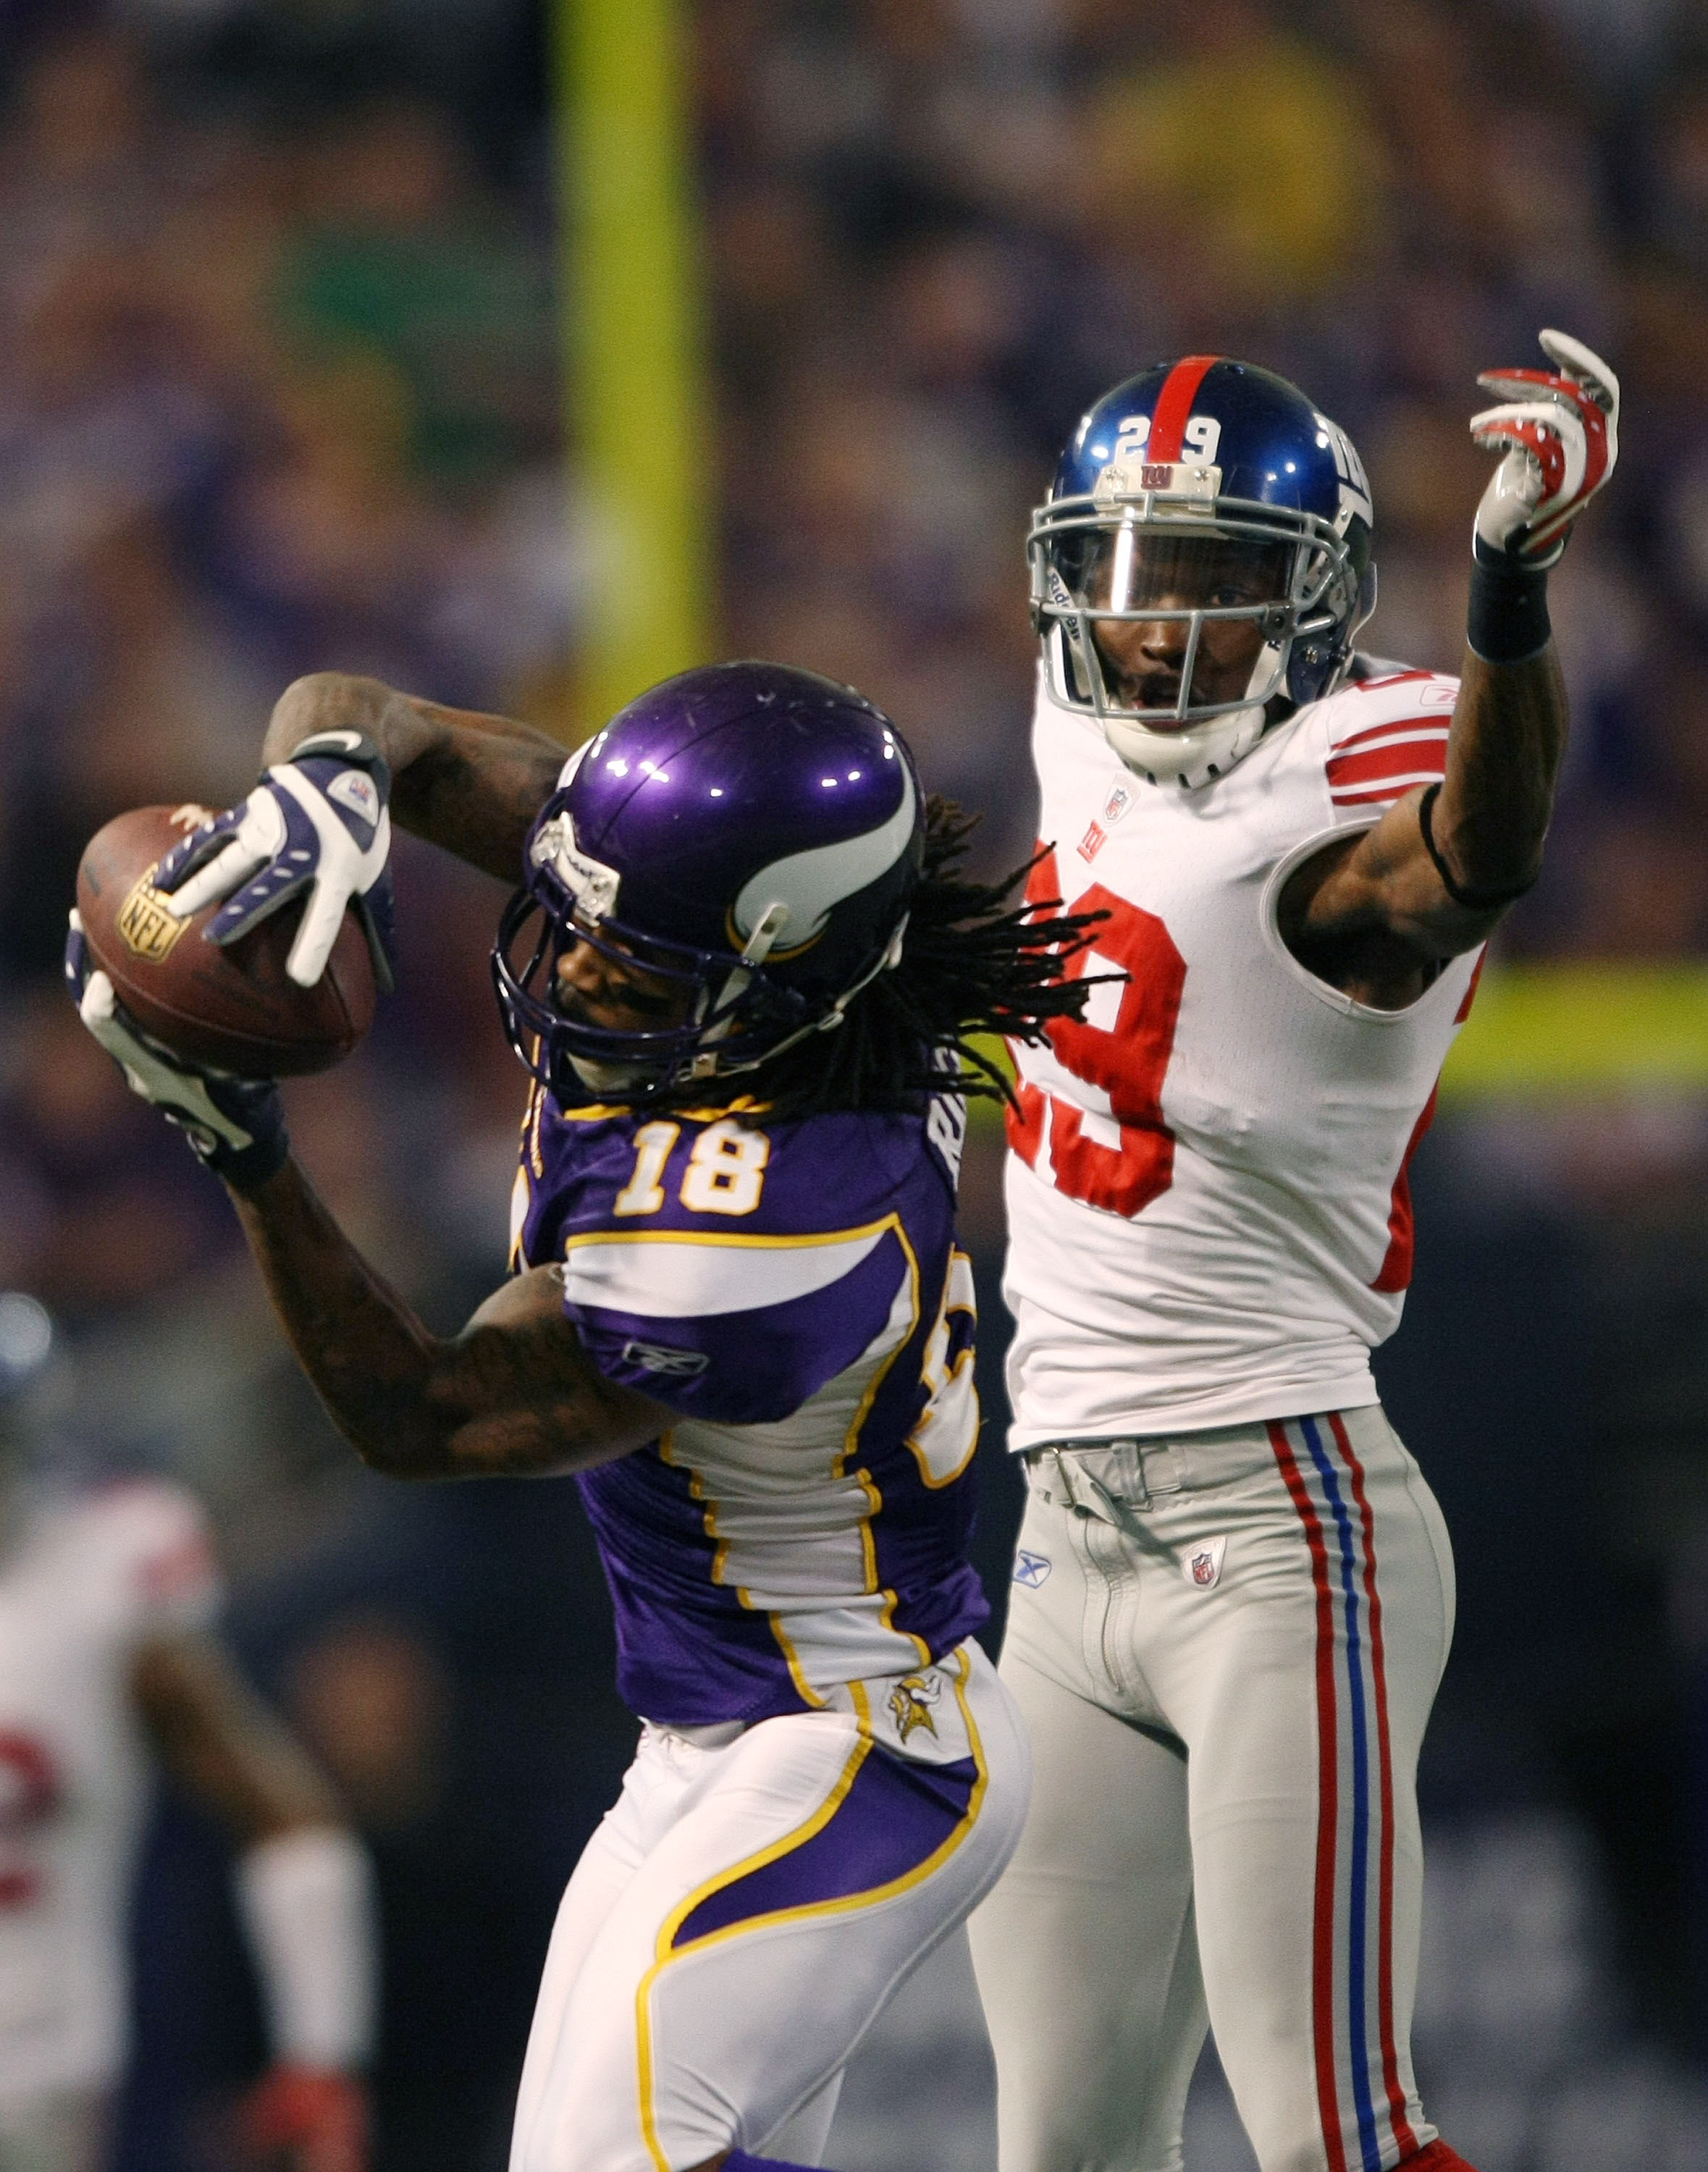 MINNEAPOLIS - JANUARY 03:  Sidney Rice #18 of the Minnesota Vikings makes the catch as D.J. Johnson #29 of the New York Giants defends on January 3, 2010 at Hubert H. Humphrey Metrodome in Minneapolis, Minnesota.  (Photo by Elsa/Getty Images)